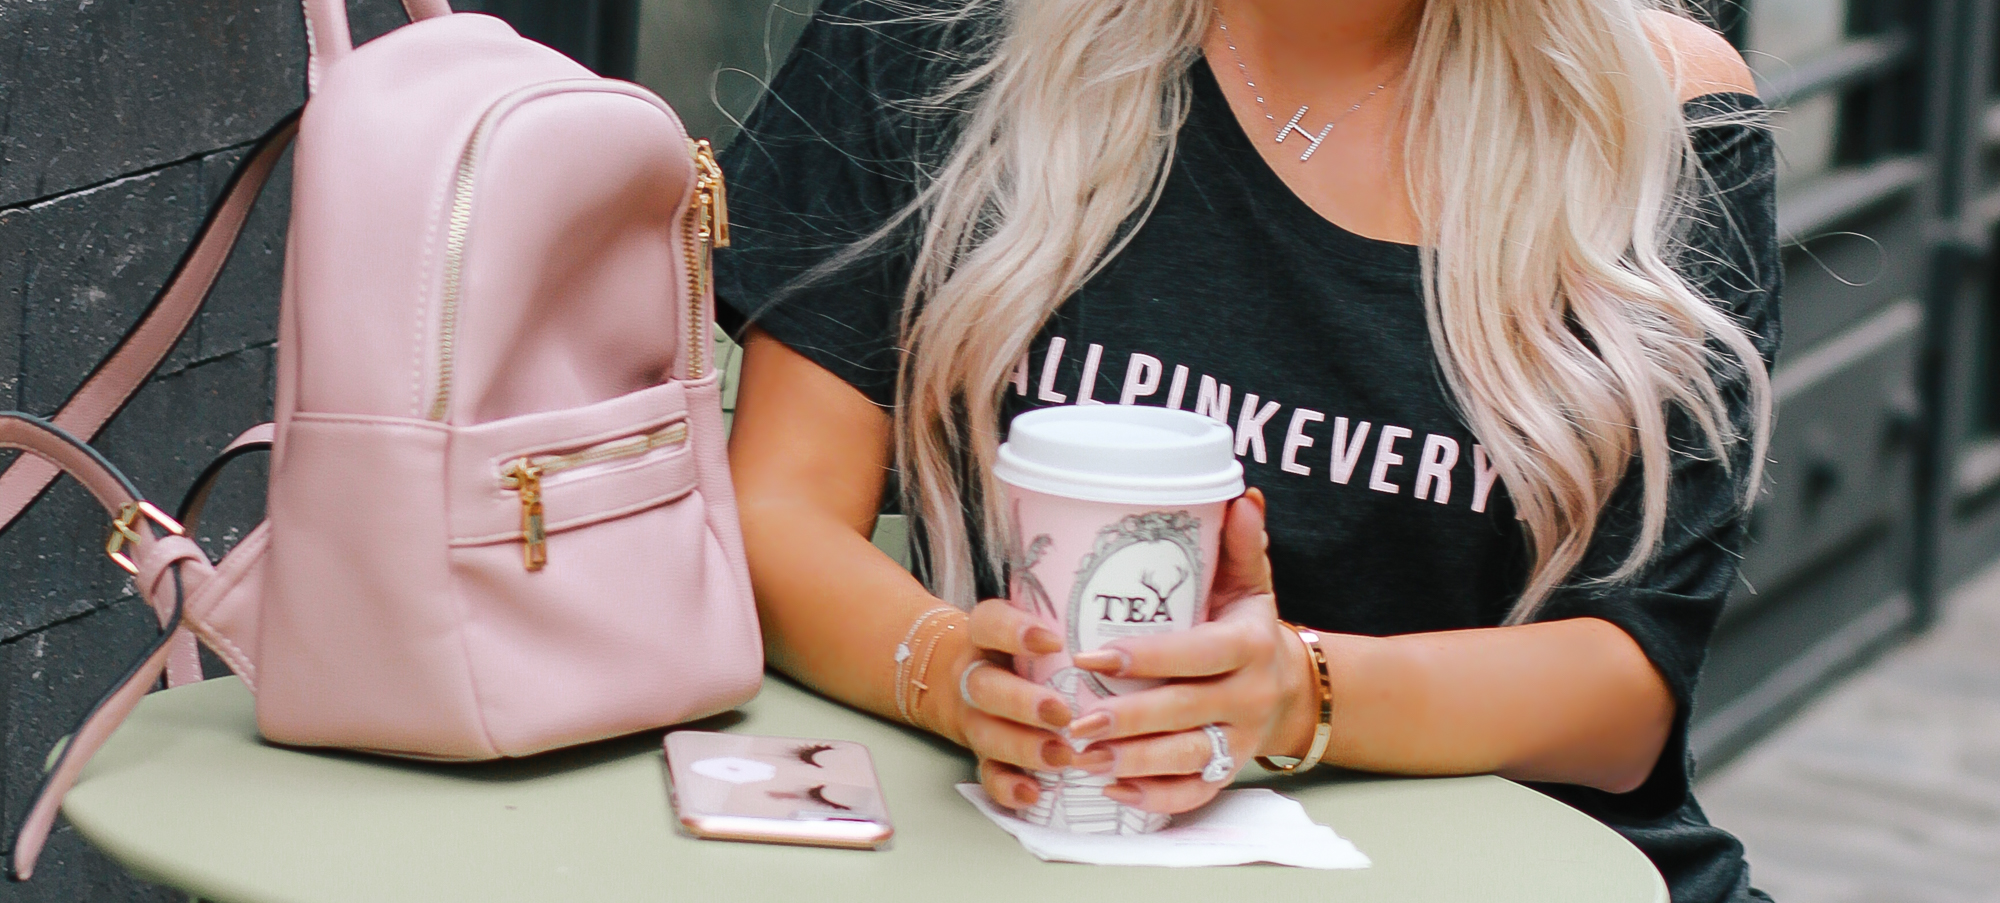 Blondie in the City | #AllPinkEverything Collection | Champagne is my spirit animal | I'm not perfect but my eyebrows are